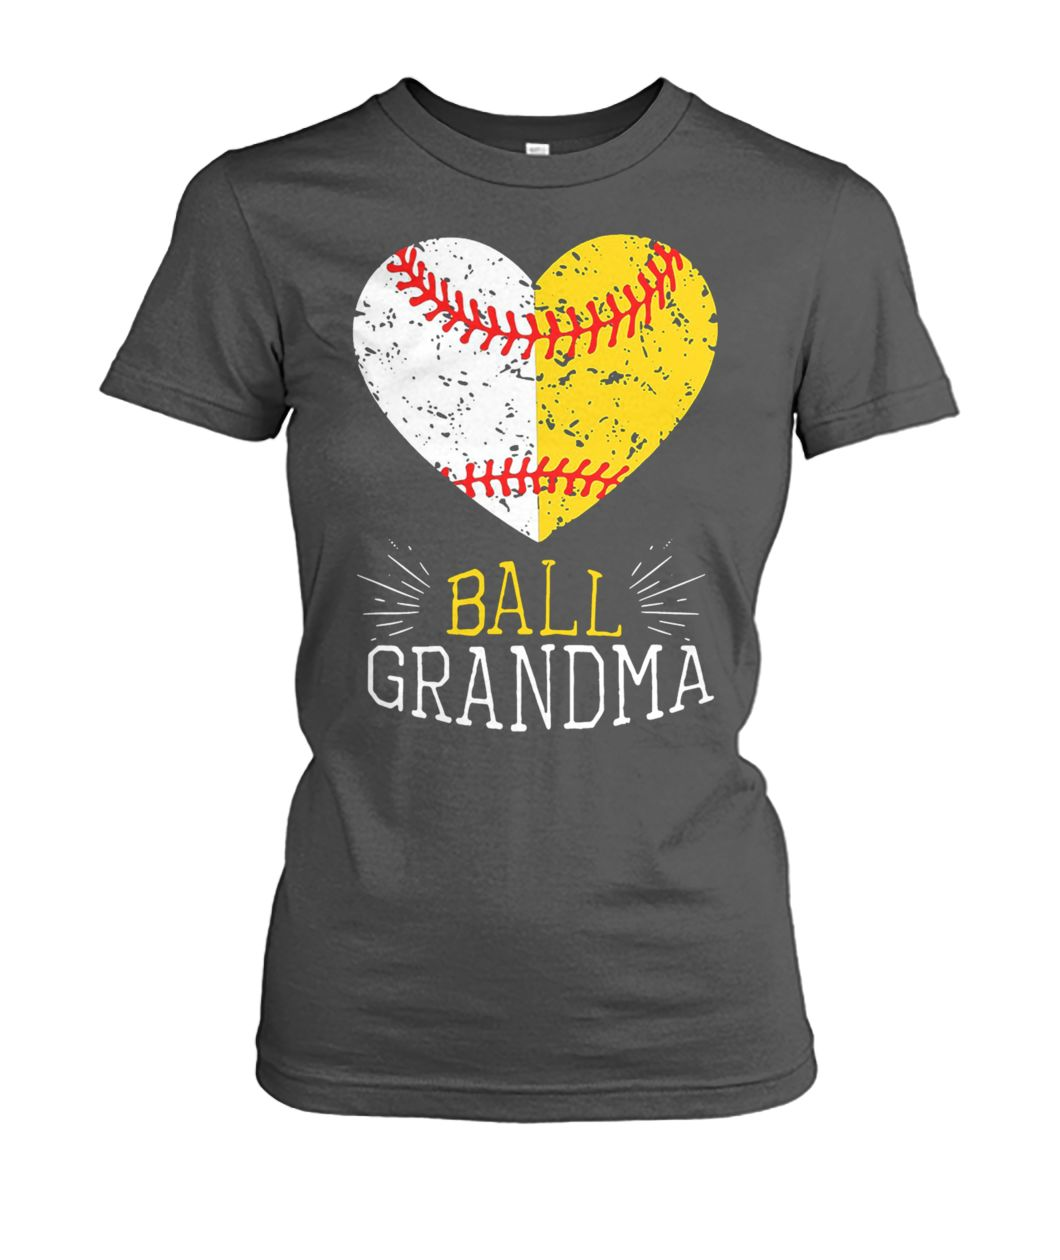 Ball grandma softball or baseball women's crew tee